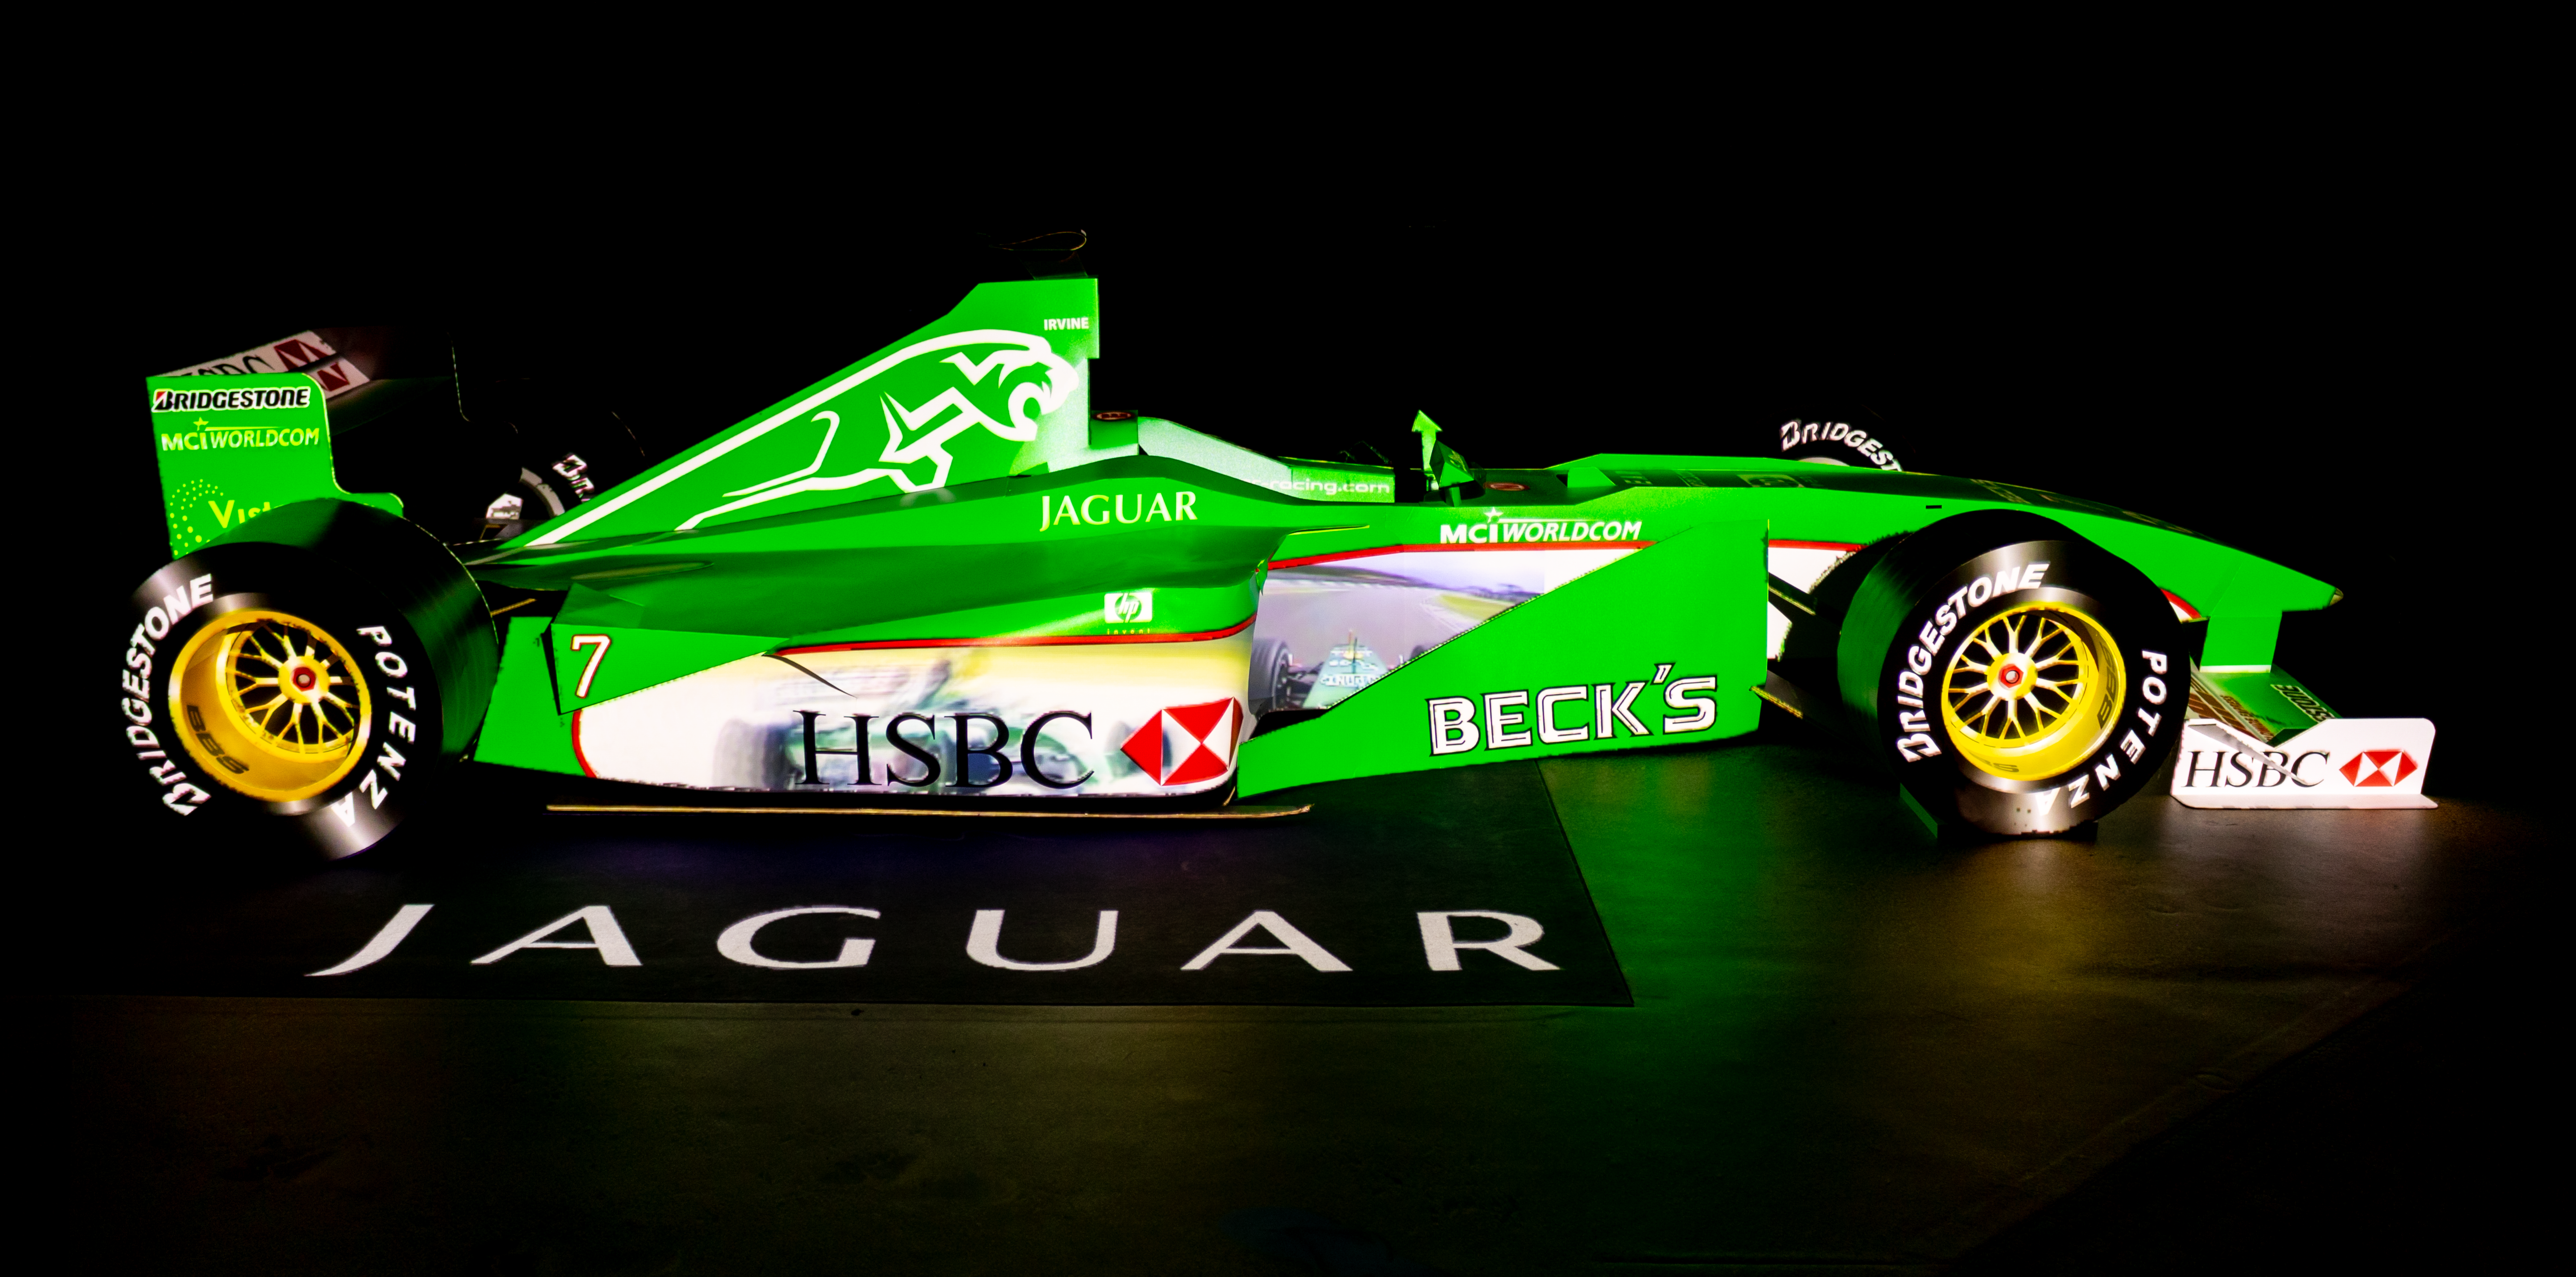 Jaguar F1 Projection Mapping